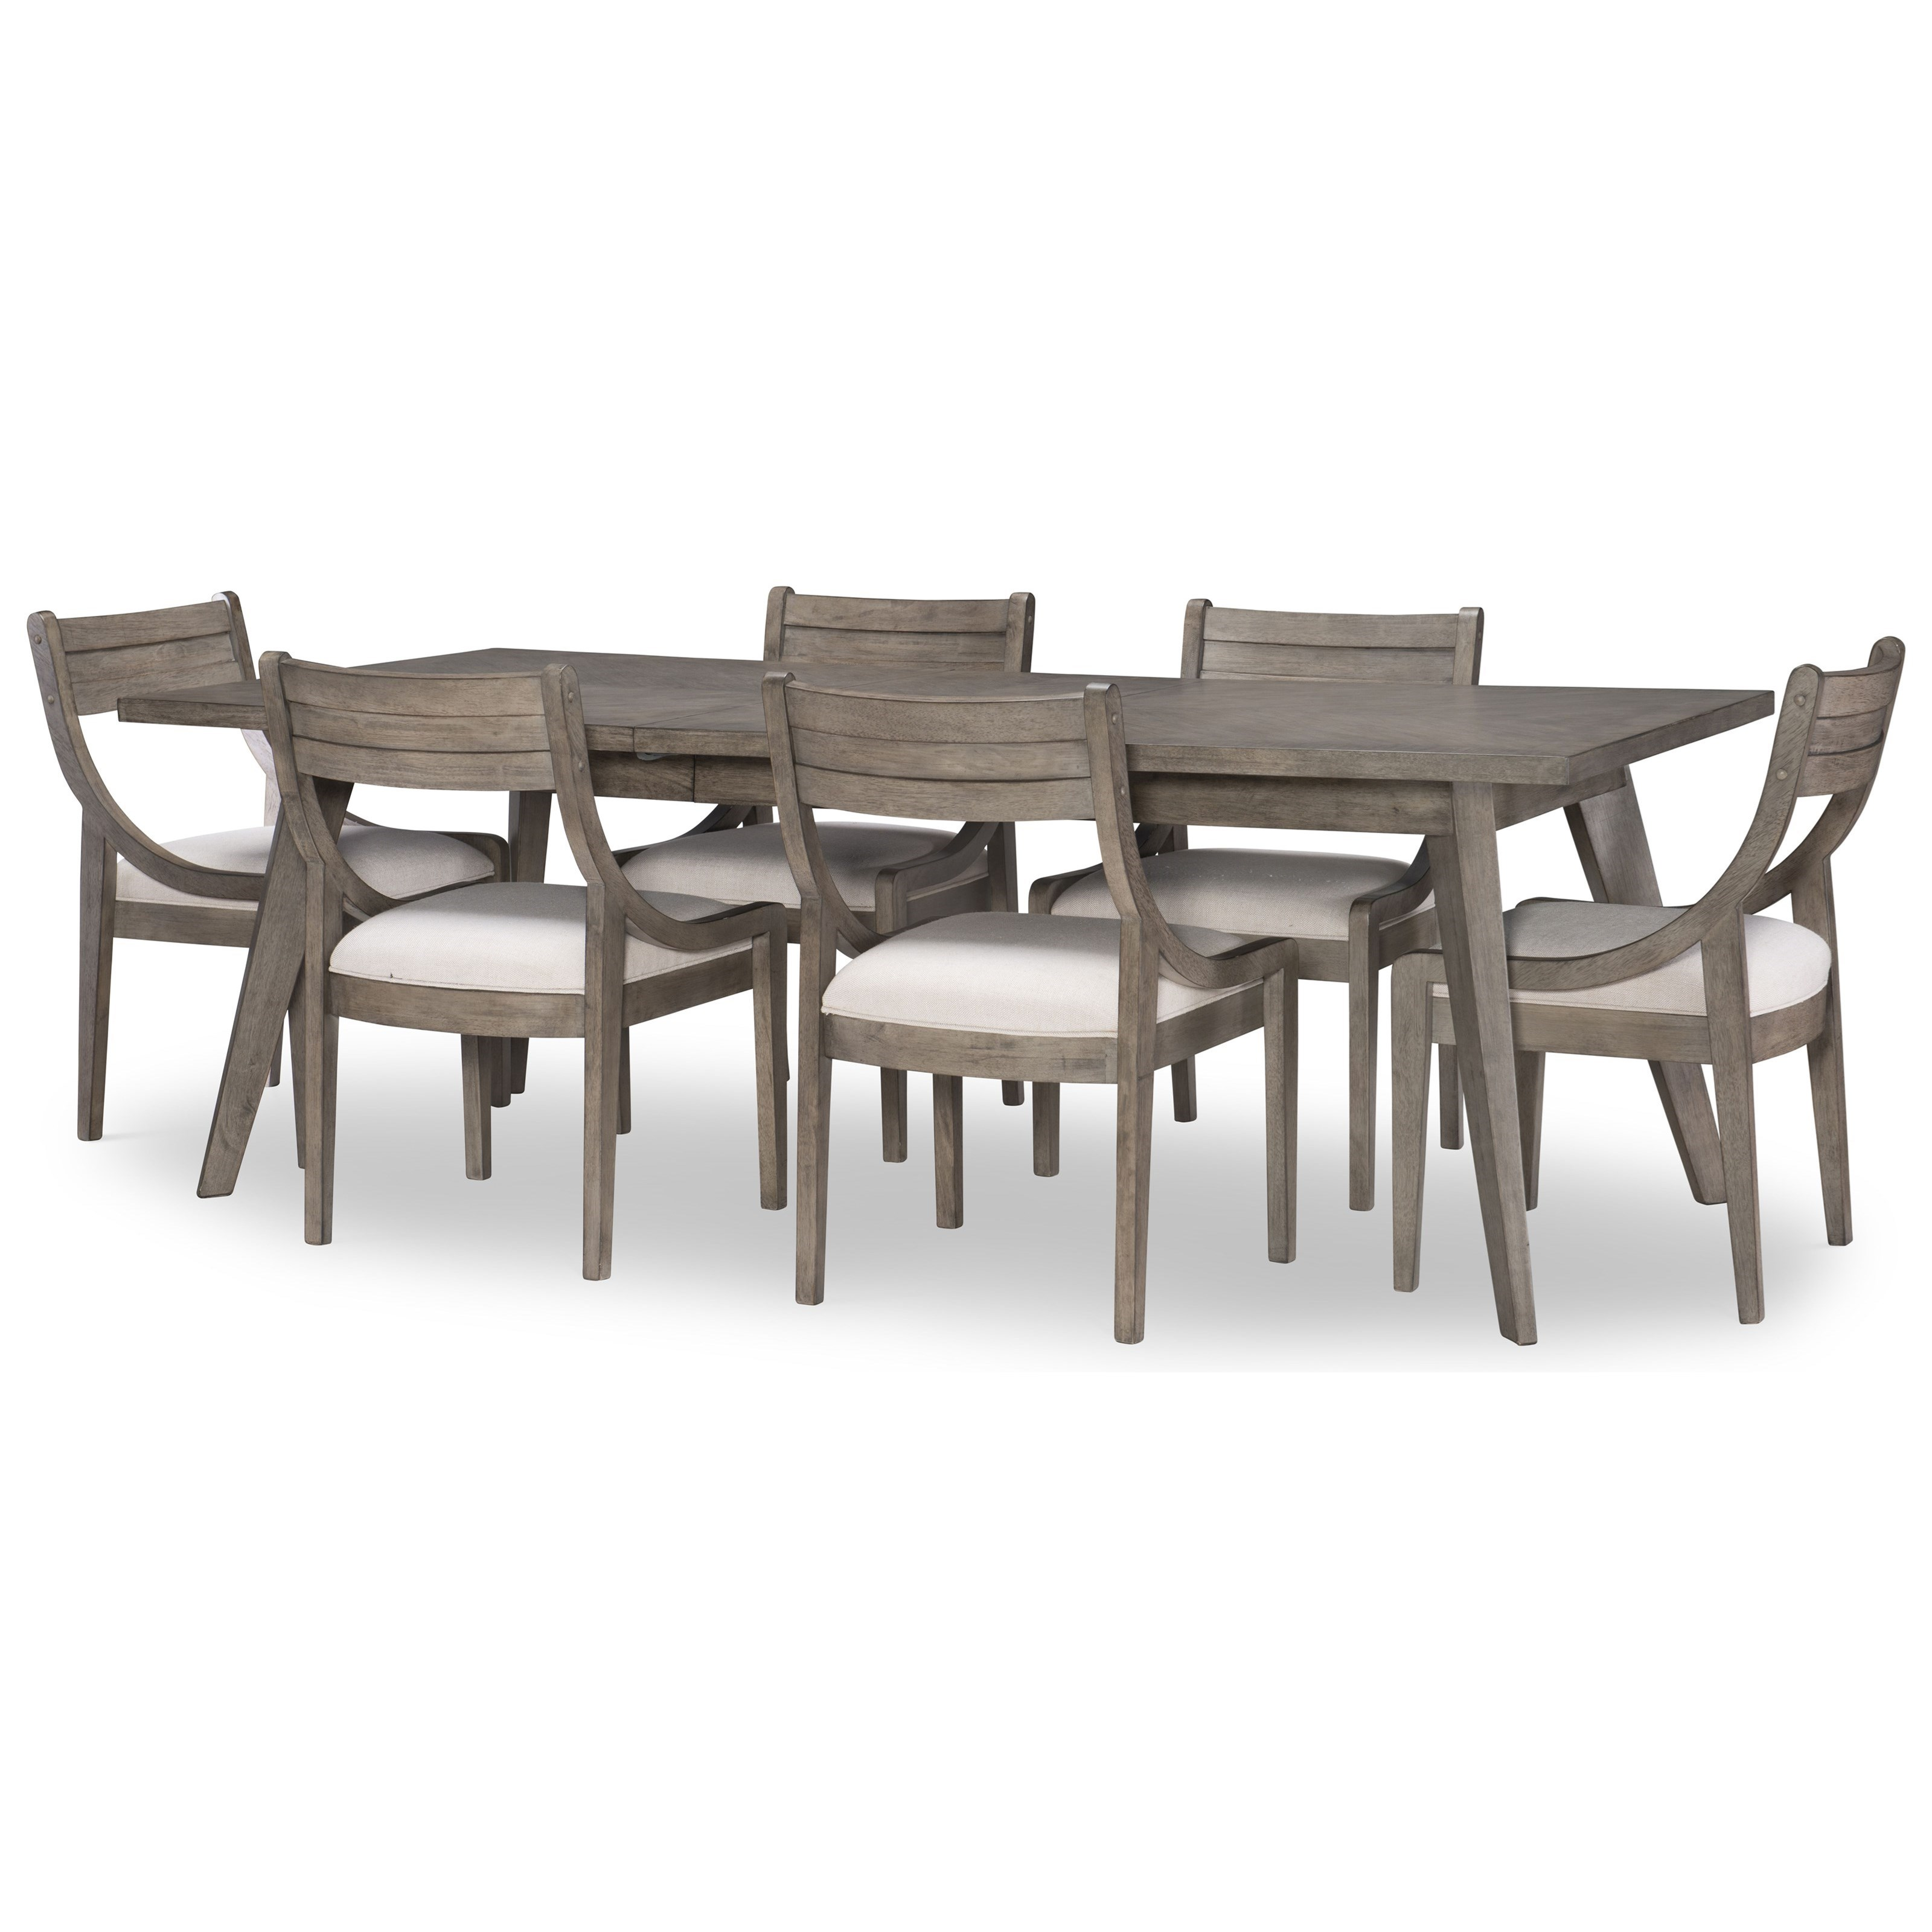 Greystone 7-Piece Rectangular Table and Chair Set by Legacy Classic at Stoney Creek Furniture